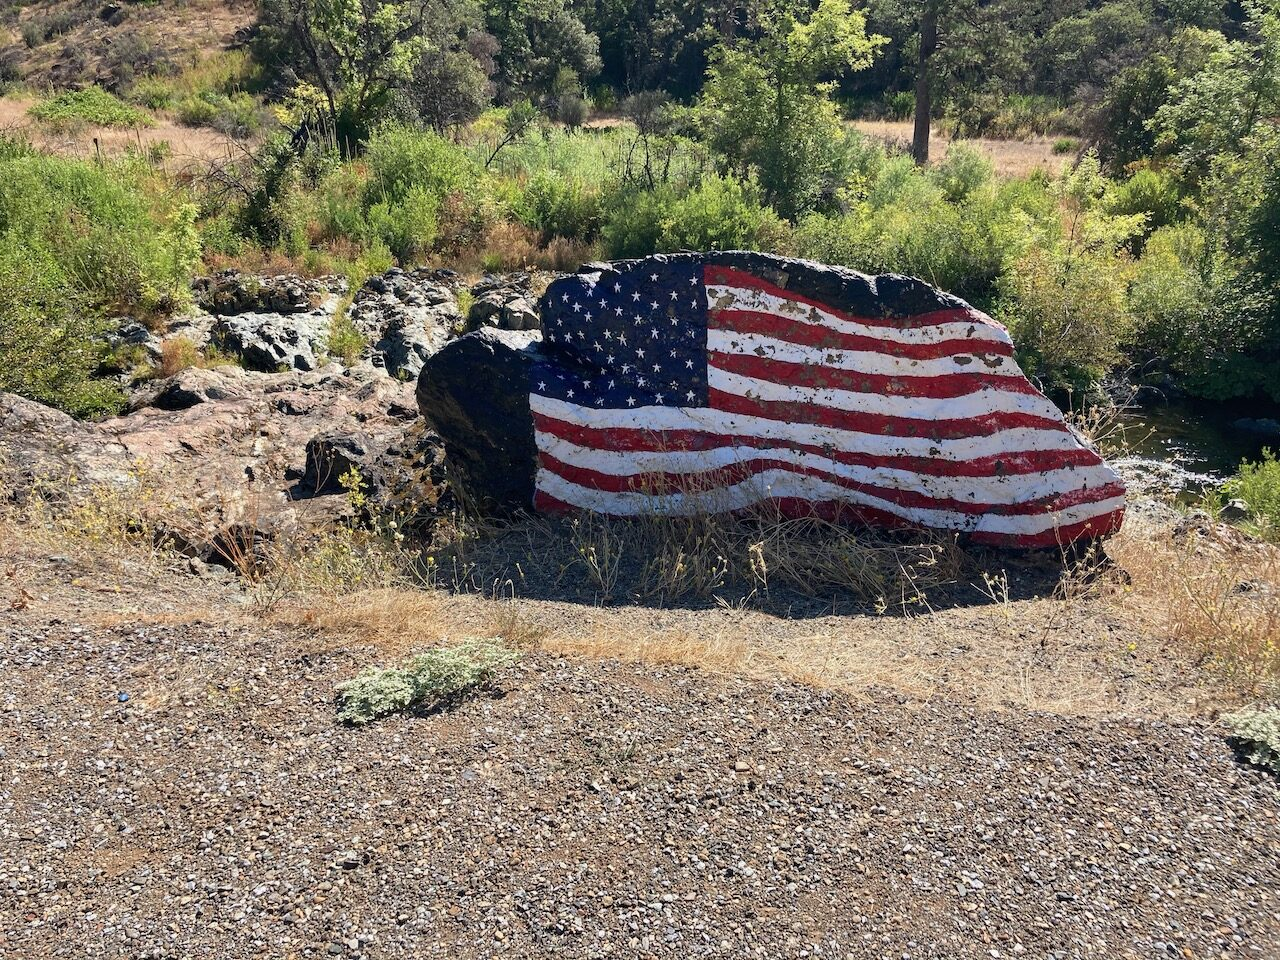 A boulder painted like Old Glory